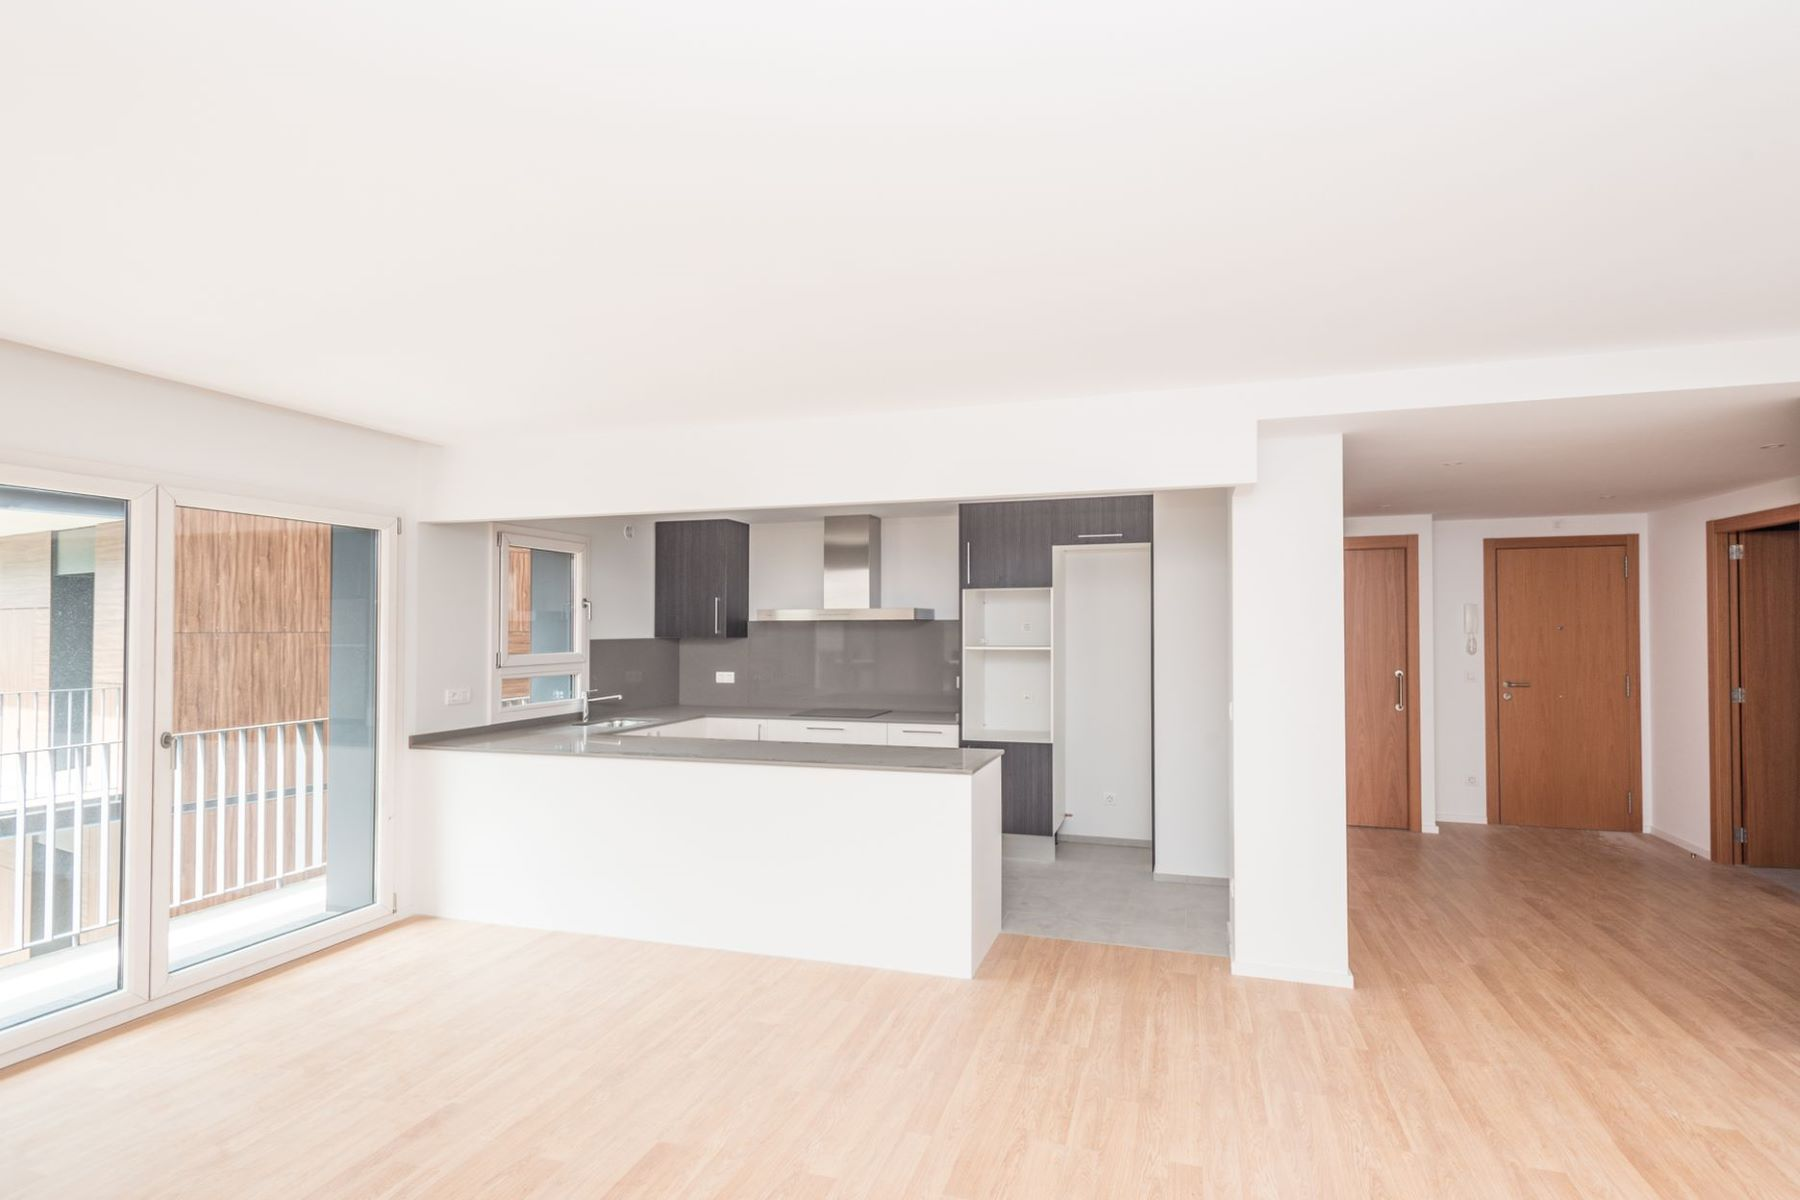 Apartments for Active at Flat for sale in Sant Julià de Lòria Sant Julia De Loria, Sant Julia De Loria AD600 Andorra